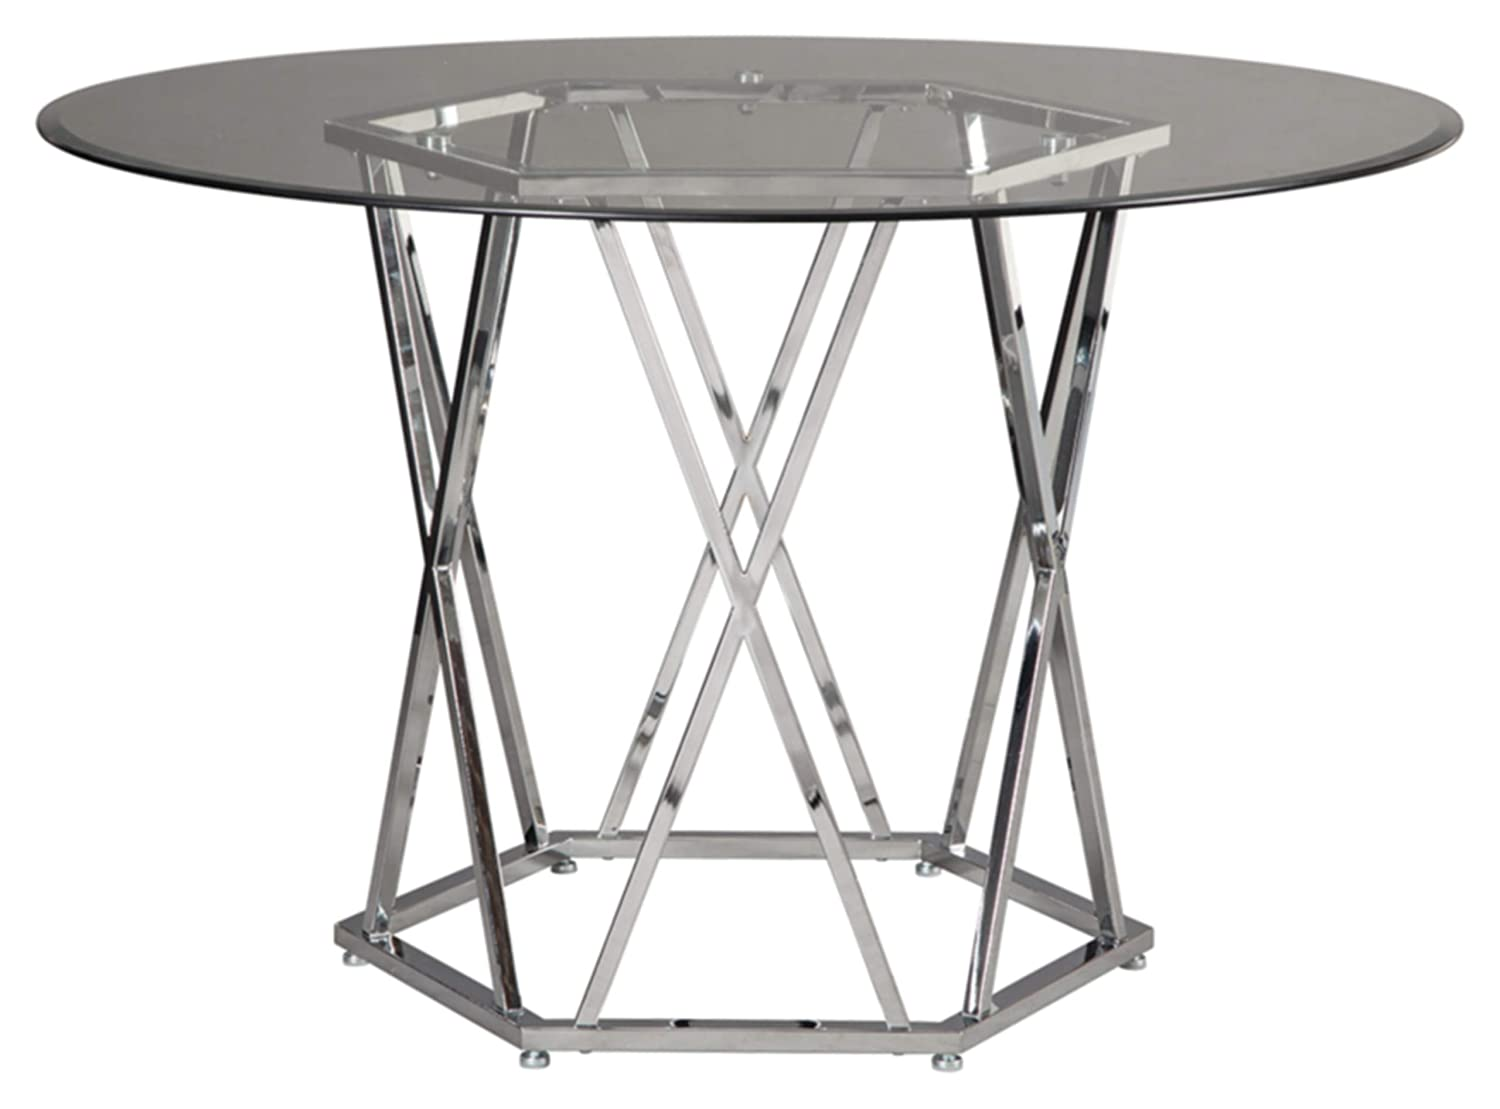 Signature Design By Ashley – Madanere Round Dining Room Table – Contemporary Style – Chrome Finish